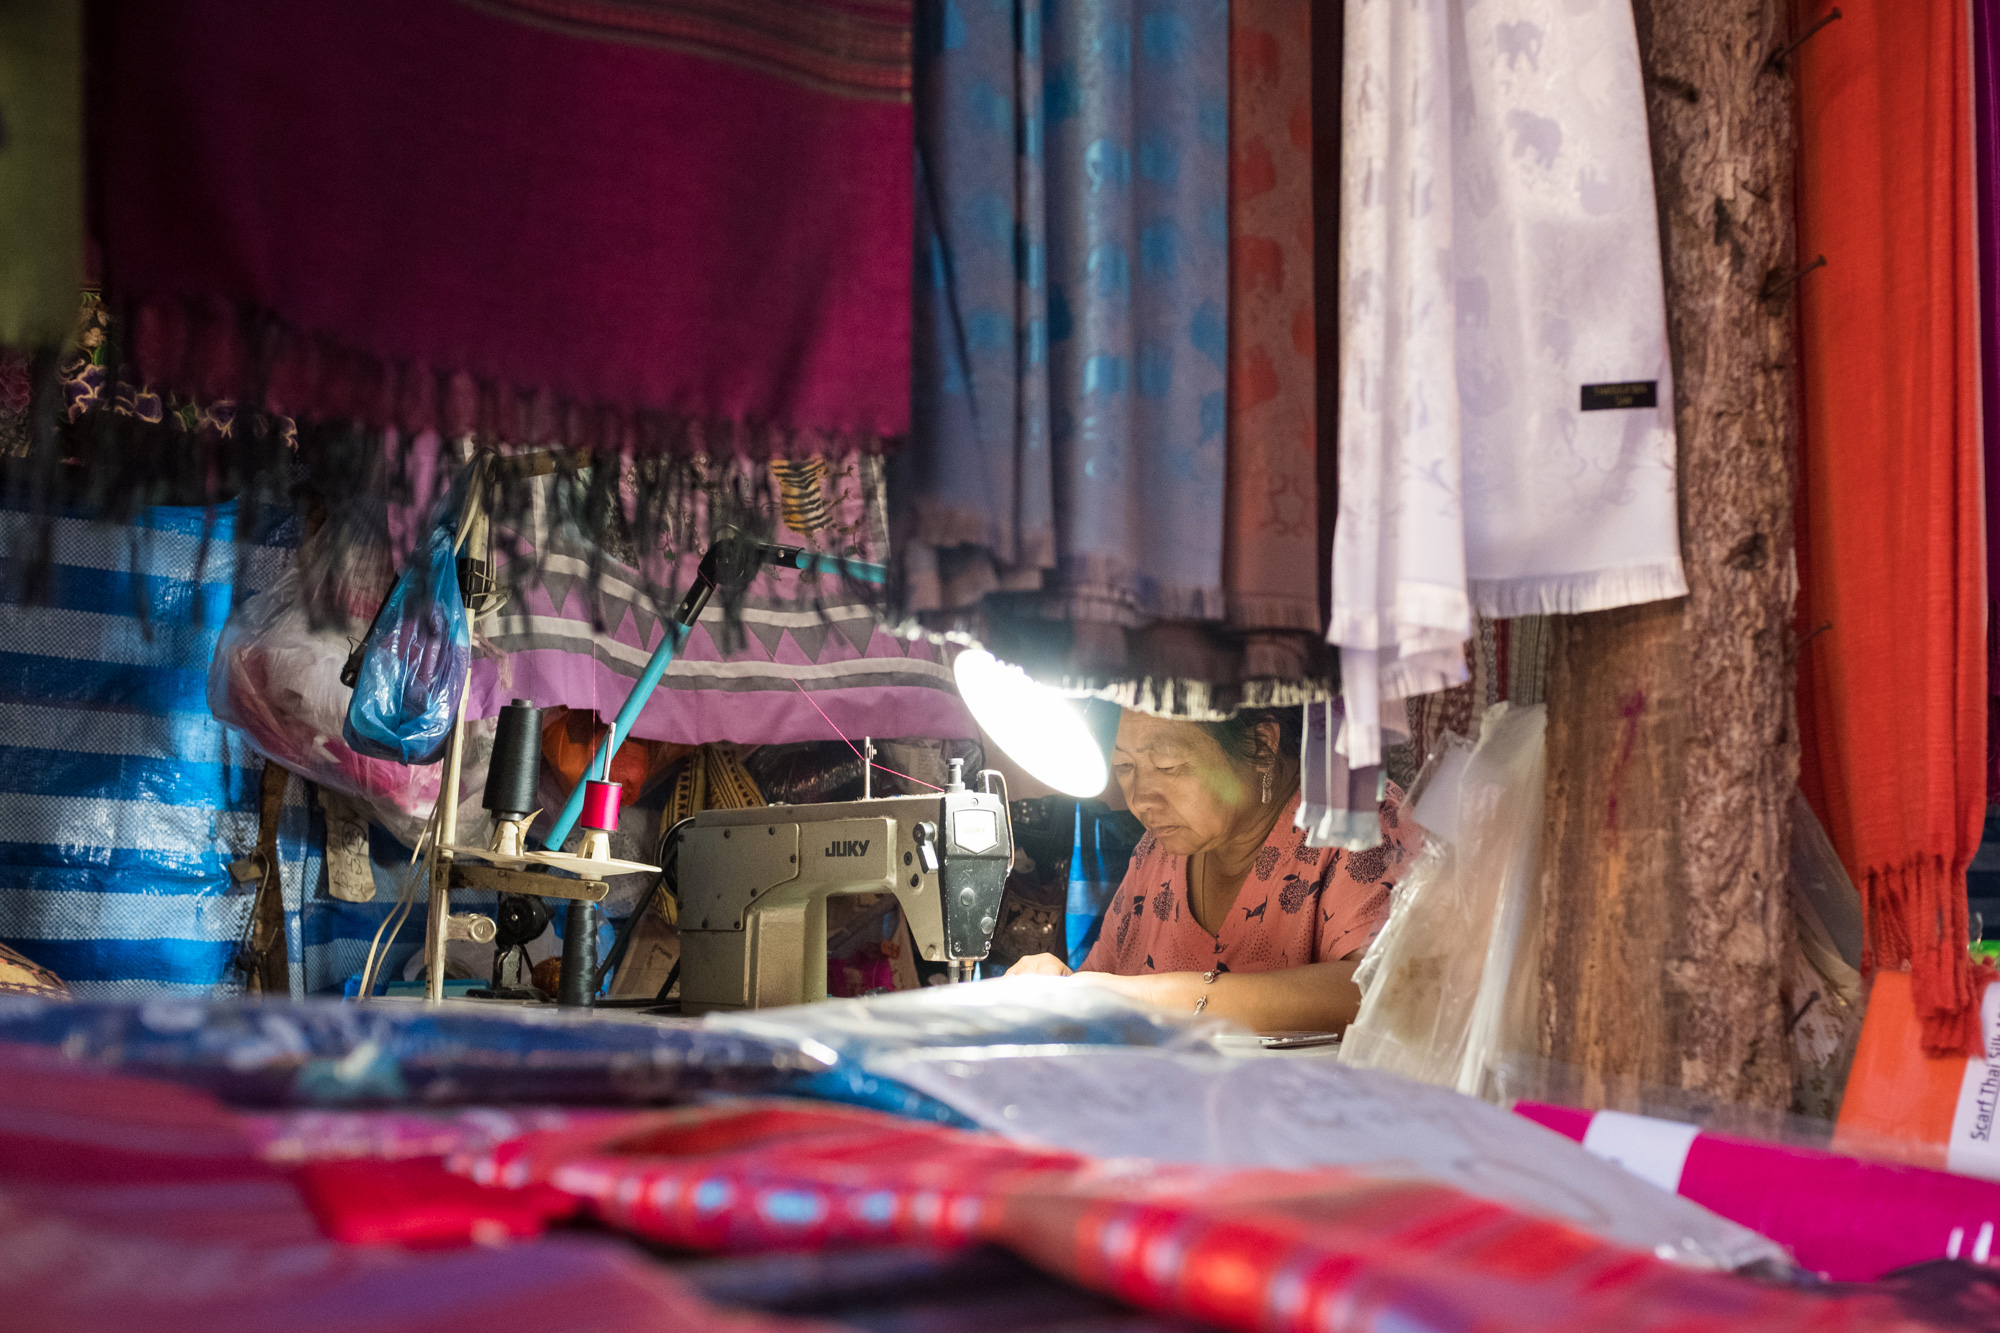 The Seamstress   Hidden deep within the fabrics and textures she sewed away patiently. Surrounding her was a seemingly endless pile of garments ready for the tourists trade.   - Doi Pui Village, Chaing Mai, Thailand